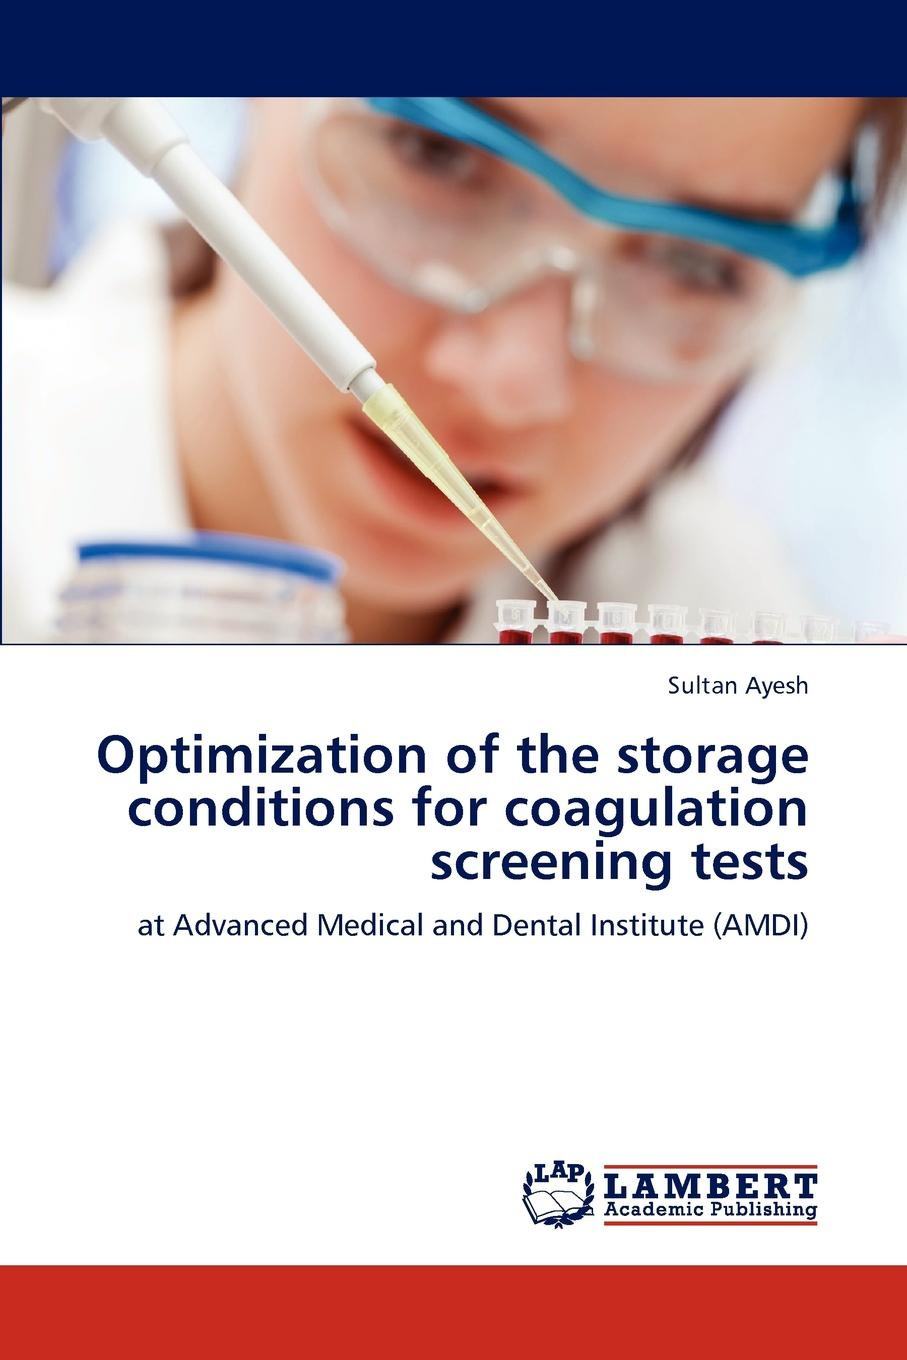 Sultan Ayesh Optimization of the Storage Conditions for Coagulation Screening Tests frico adcs22wh h